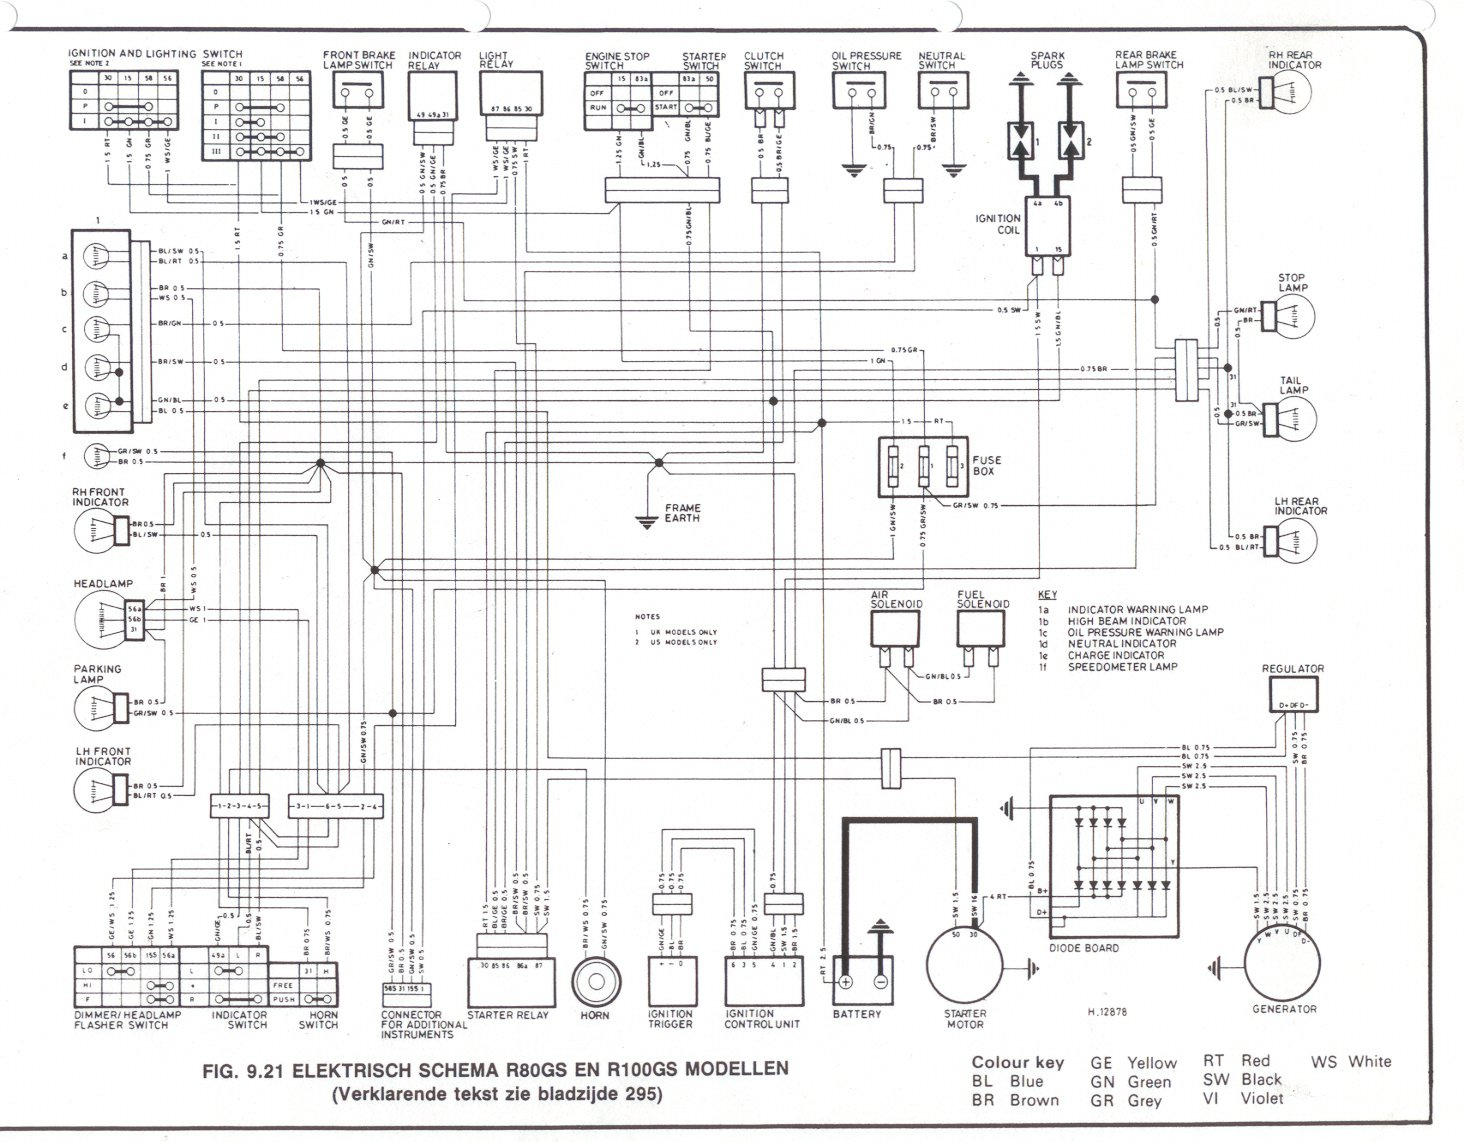 hight resolution of 2001 vw gti stereo wiring diagram auto electrical wiring diagram wiring diagram rinker 270 2002